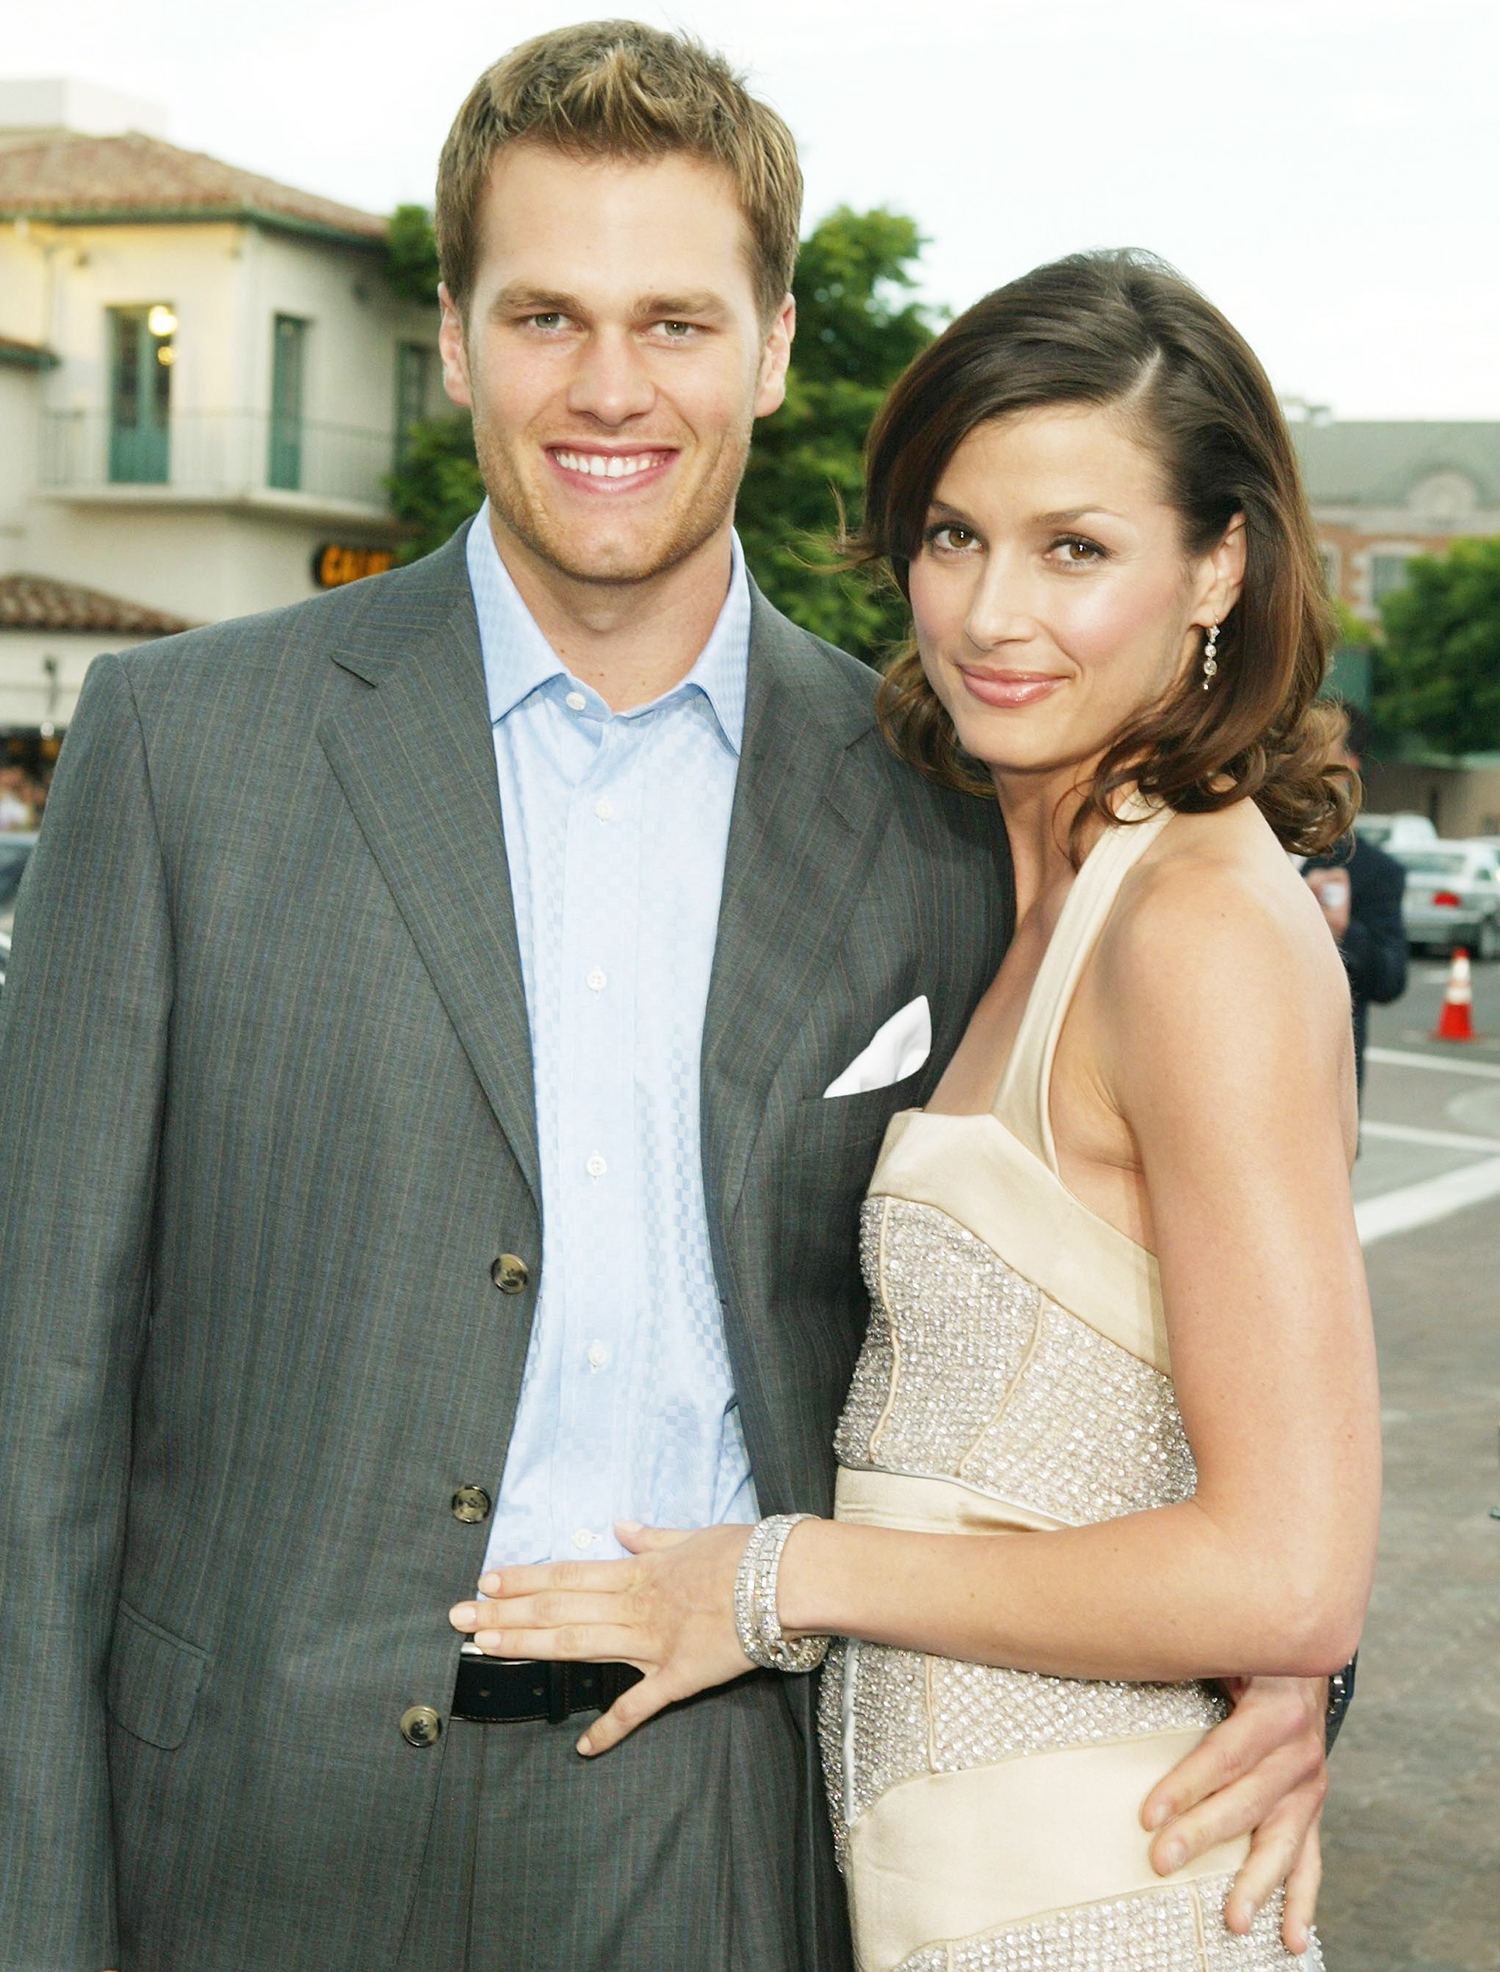 Tom Brady and Bridget Moynahan attend the premiere of 20th Century Fox's